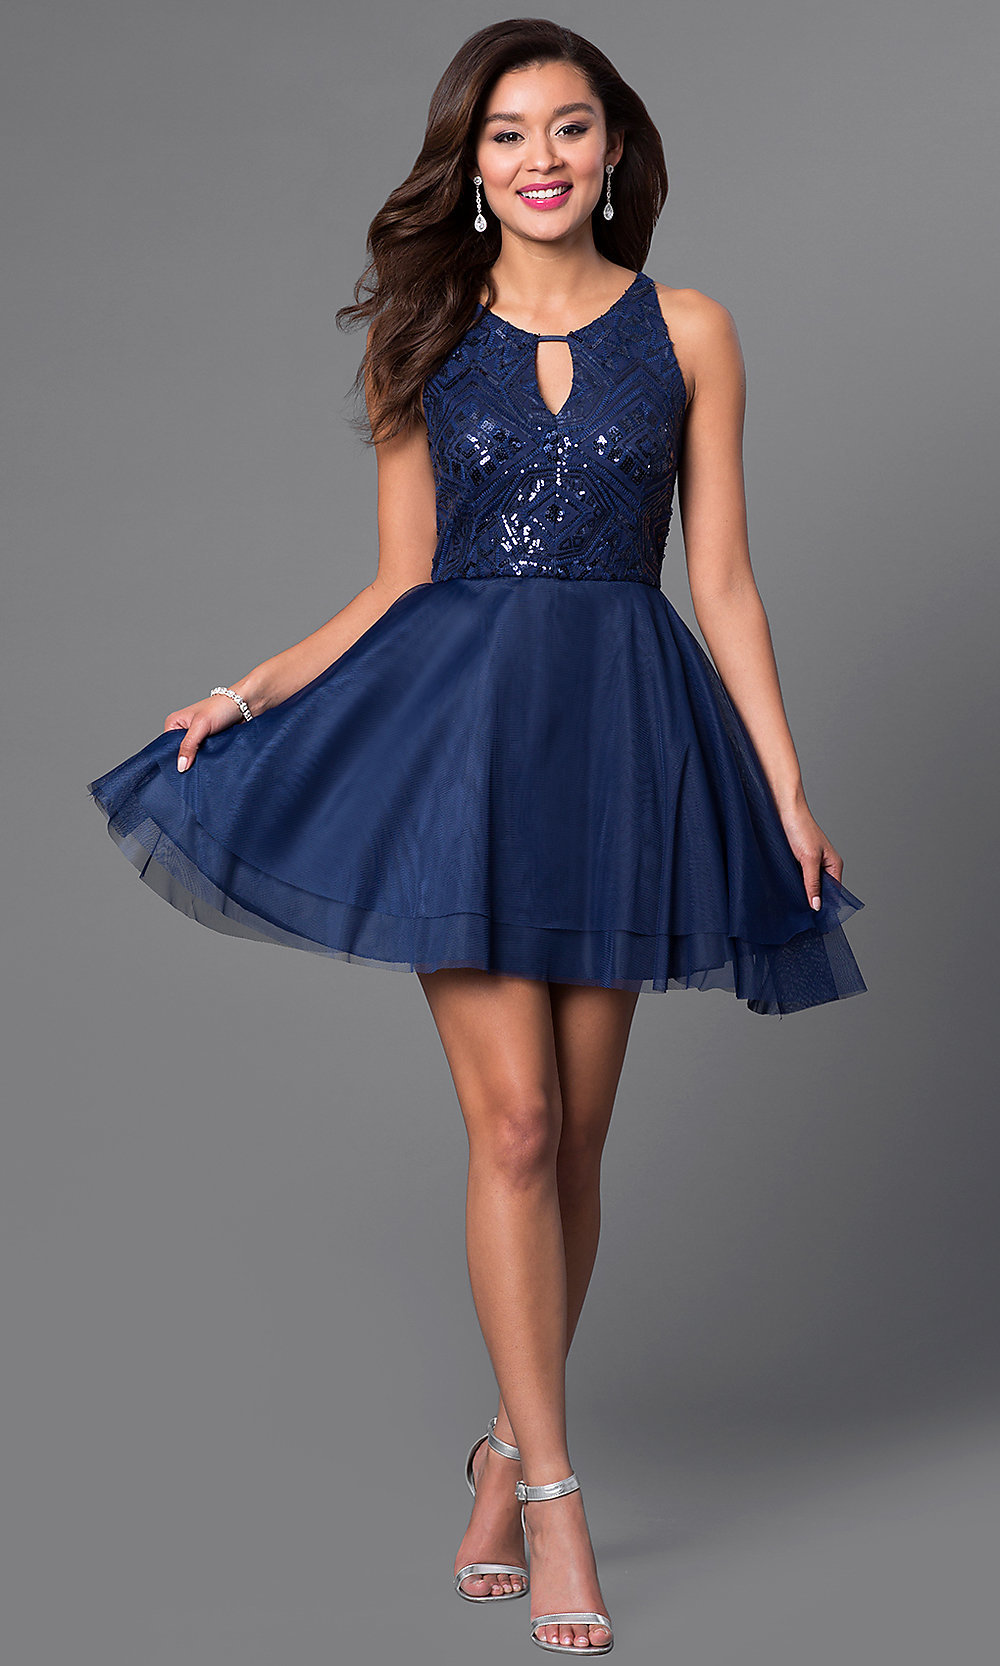 Navy Blue Short A-line Homecoming Dresses-Promgirl